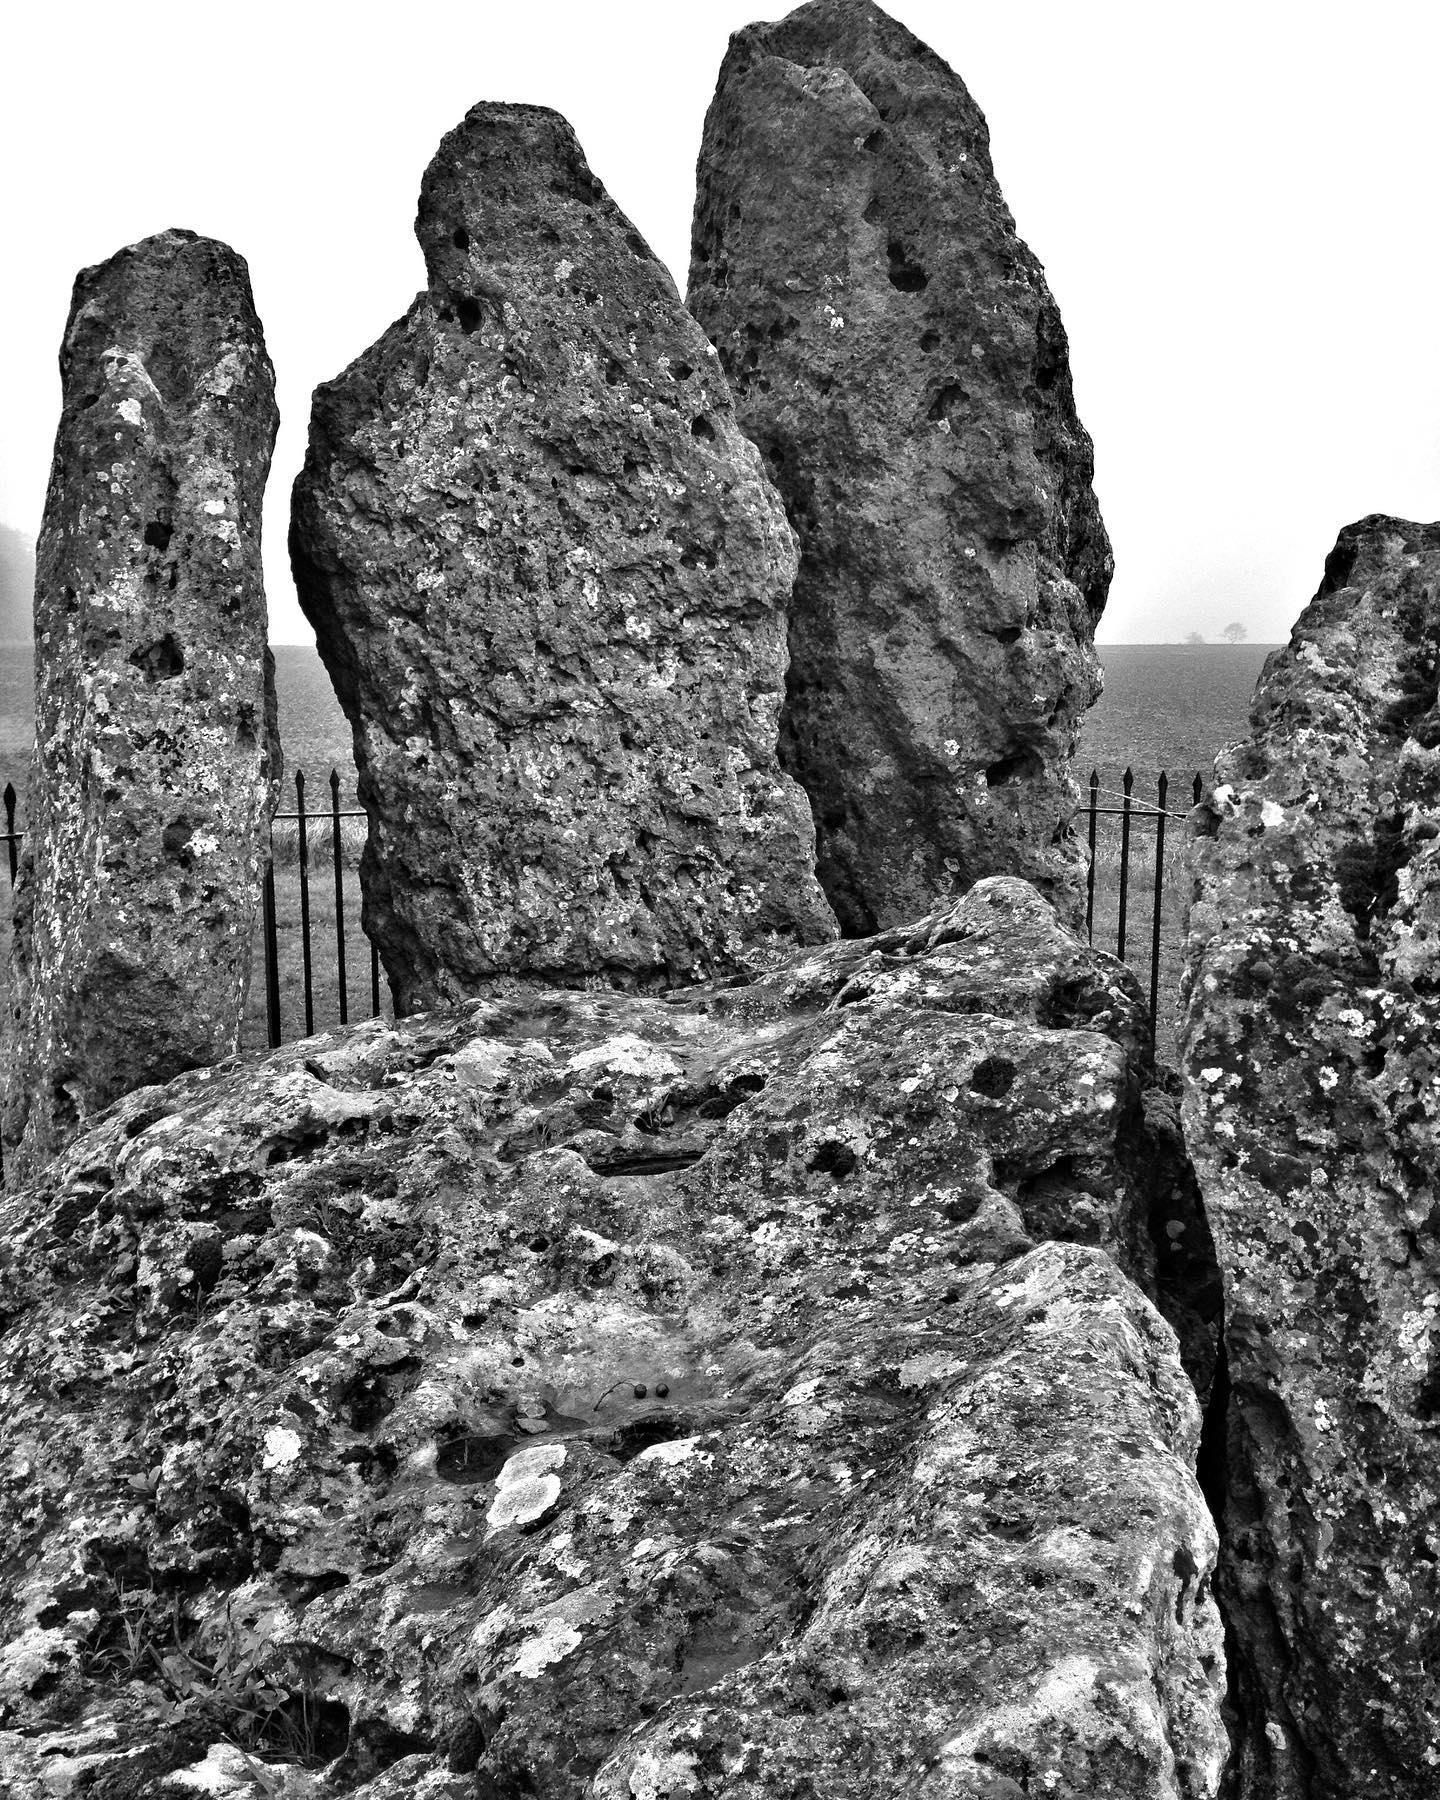 portal dolmen. whispering knights. believed to be the earliest of the rollright stones, they are the remains of the burial chamber of an early or middle neolithic portal dolmen, lying 400 metres east of the king's men circle. four standing stones survive, forming a chamber about two square metres in area around a fifth recumbent stone, probably the collapsed roof capstone. excavations in the 1980's revealed that the portal dolmen had never been a part of a longer cairn, as had been suggested by some earlier investigators. neolithic pottery found at the time as part of the excavations has suggested the early date.#neolithic #wisperingknights #portaldolmen #rollrightstones #archaeology #burialchamber  #monoliths #capstone